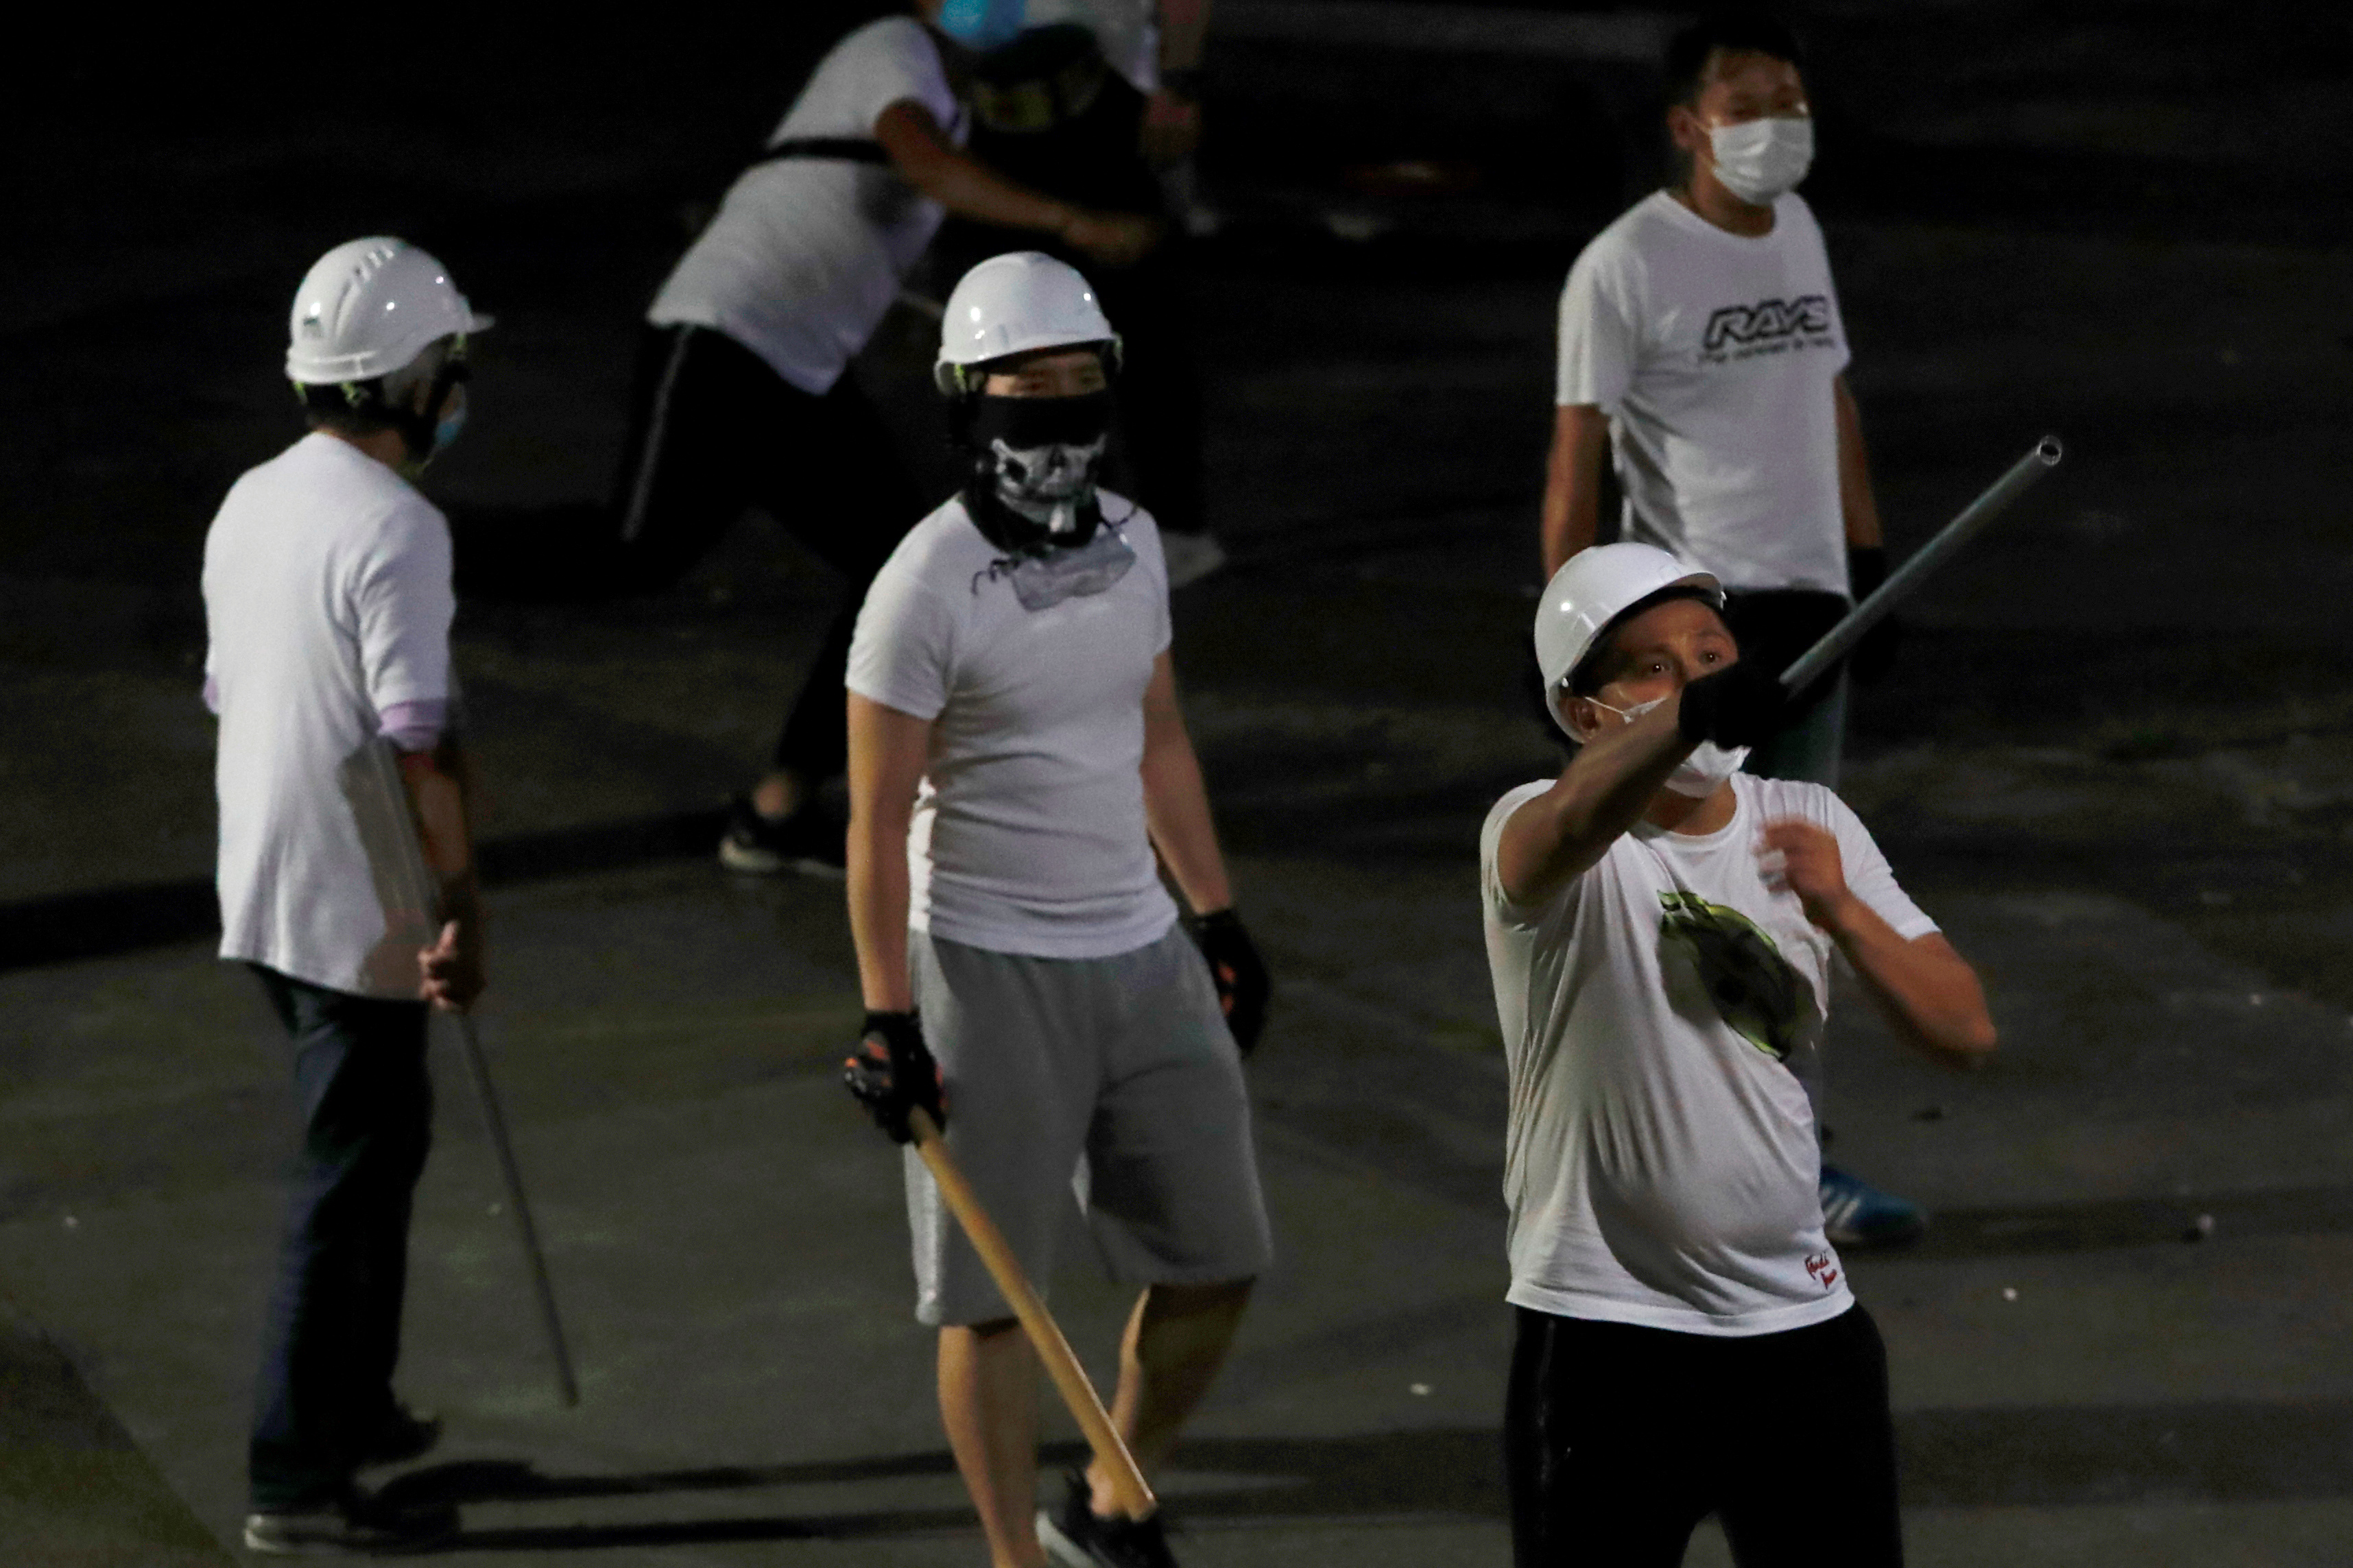 Armed, white-clad men attacked protesters and commuters in Yuen Long, Hong Kong, on July 21, 2019